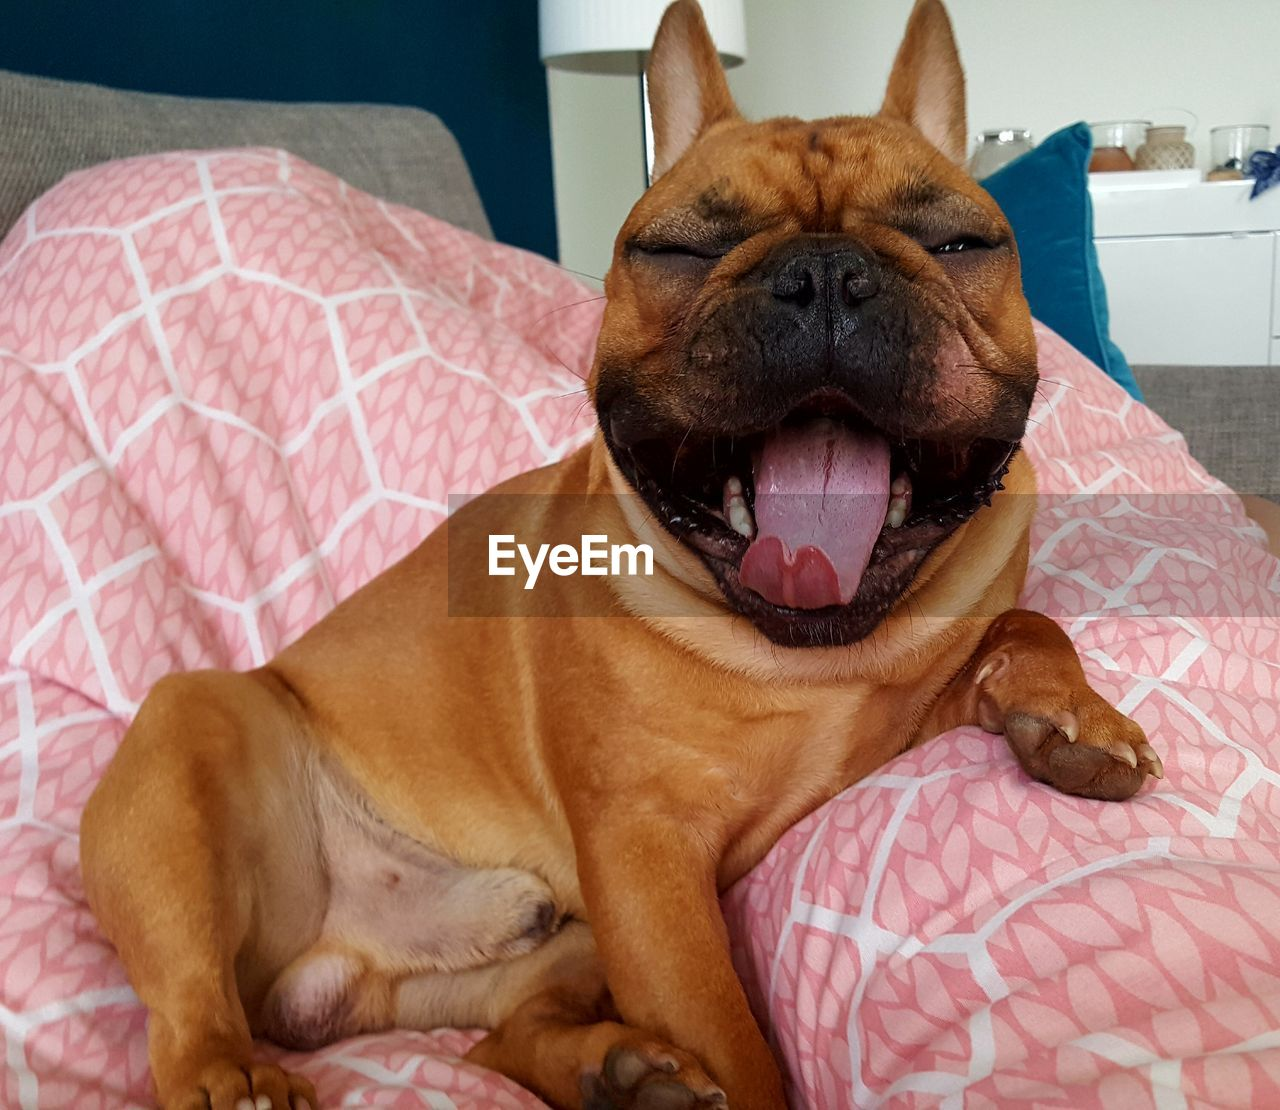 animal themes, domestic animals, animal, domestic, mammal, pets, one animal, dog, canine, vertebrate, indoors, relaxation, furniture, bed, facial expression, sticking out tongue, no people, home interior, mouth, close-up, mouth open, animal tongue